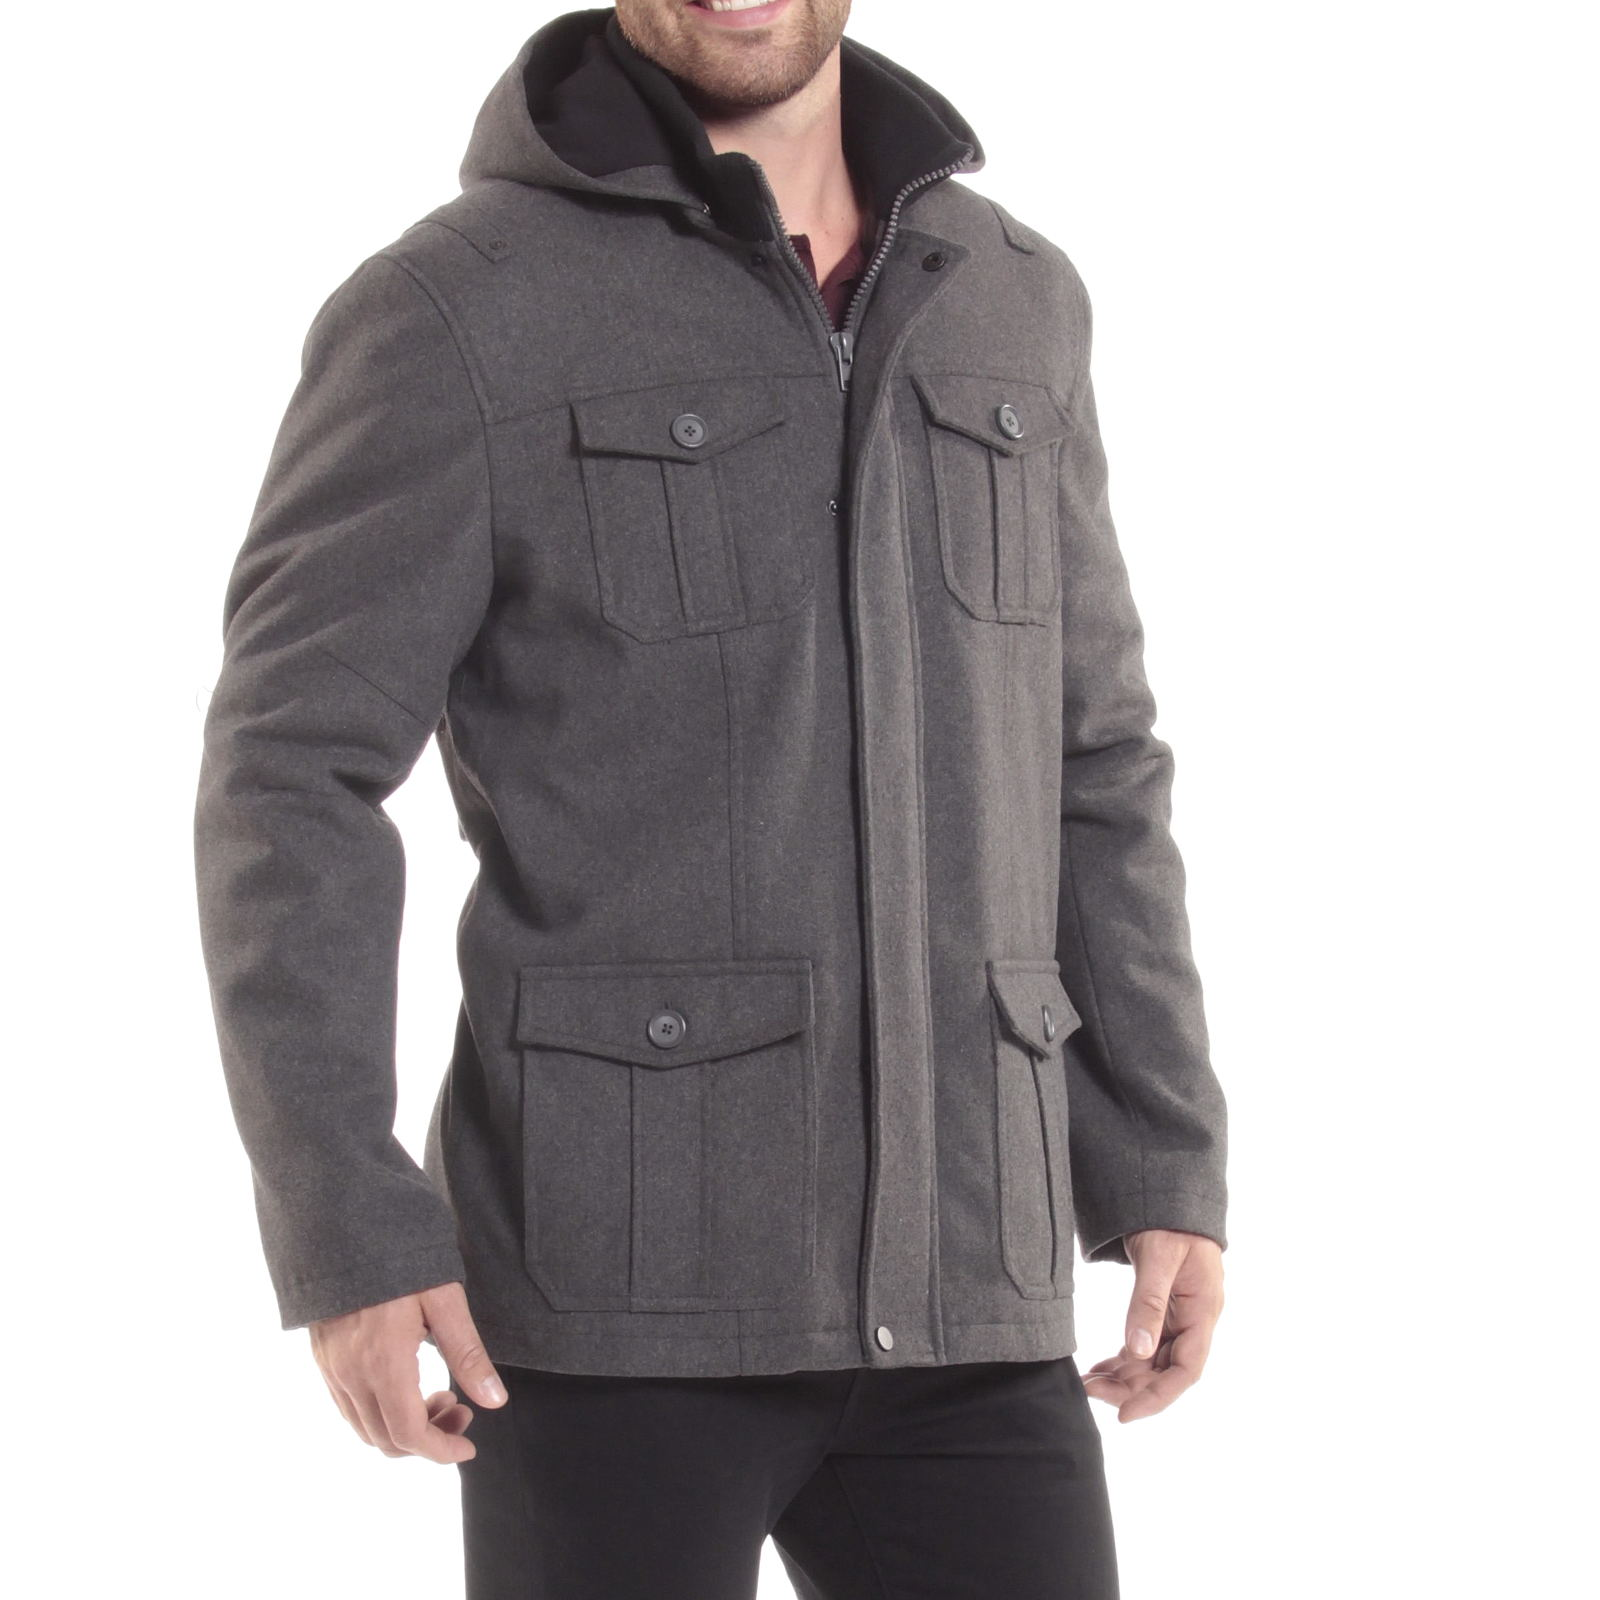 Alpine-Swiss-Noah-Mens-Wool-Coat-Parka-with-Removable-Hood-Jacket-Cargo-Pockets thumbnail 28